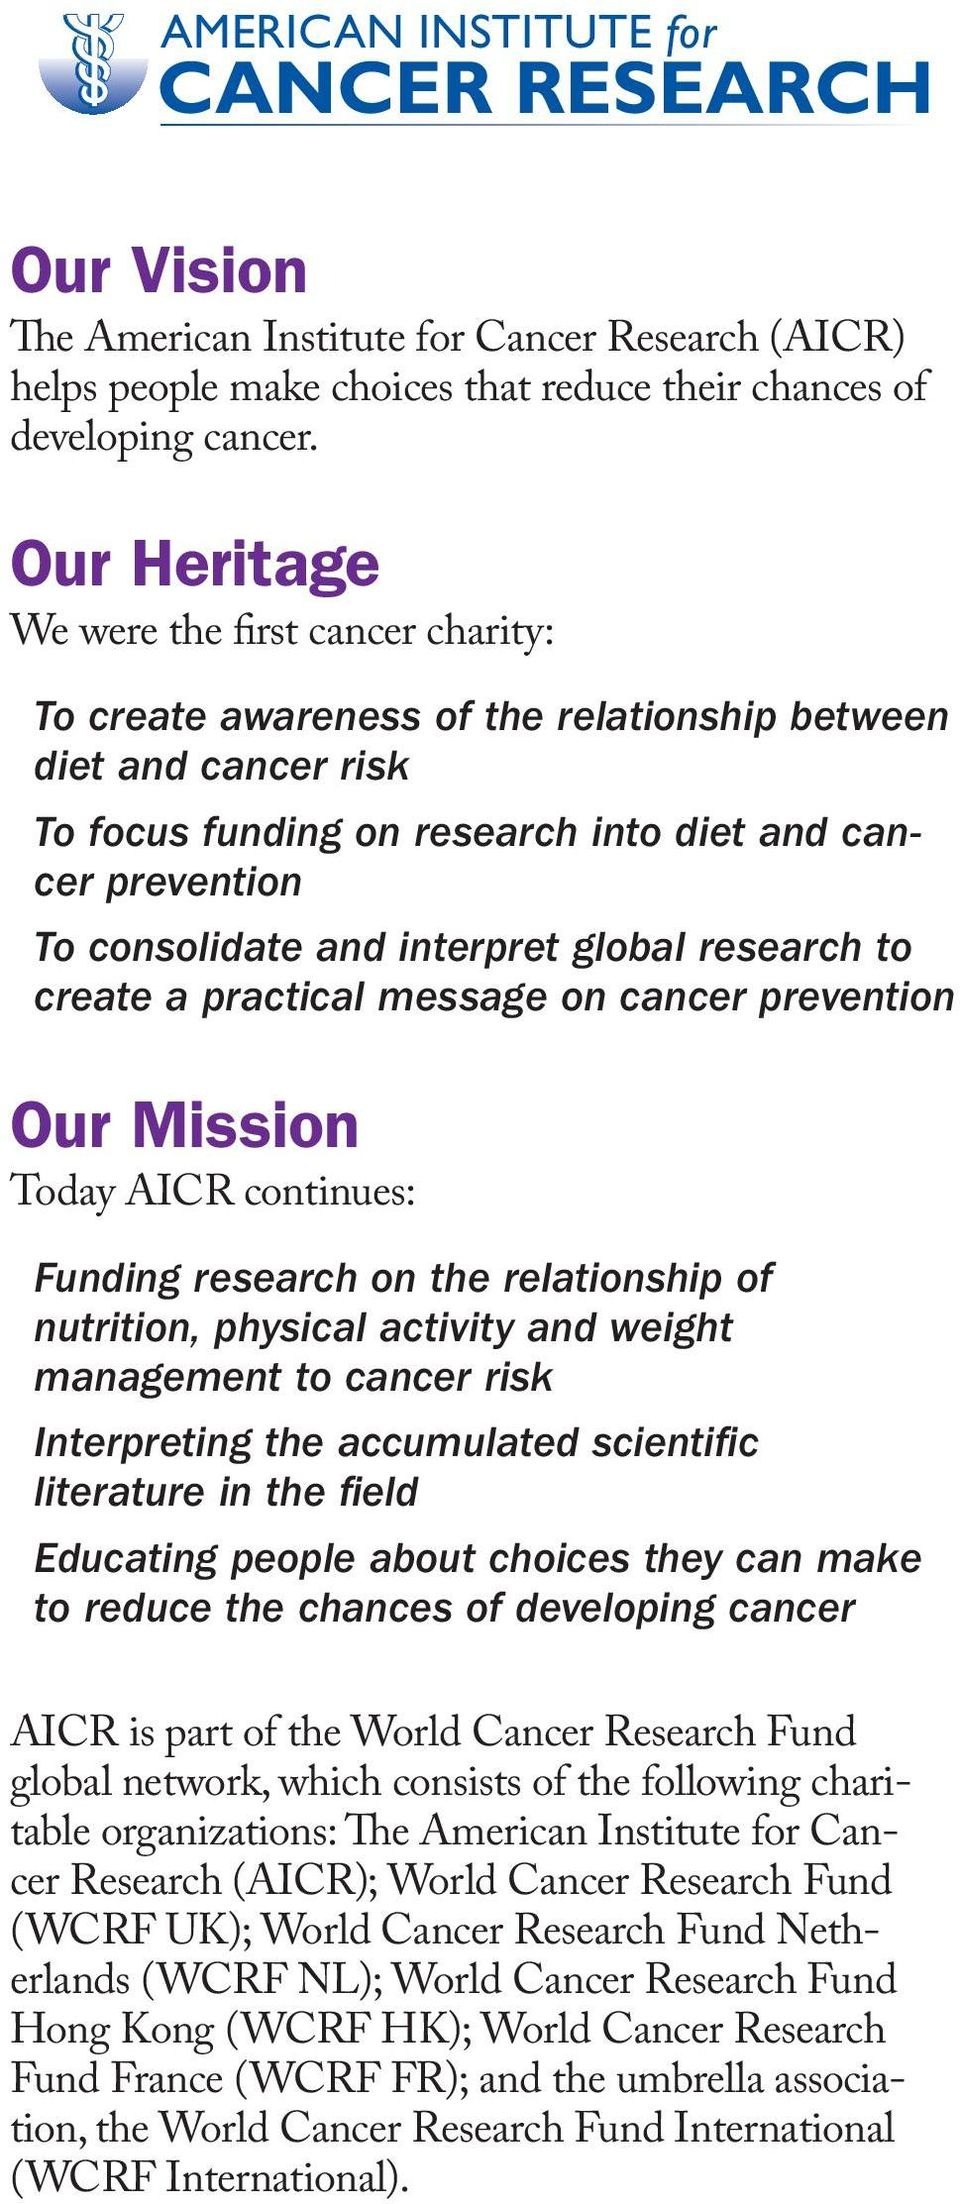 interpret global research to create a practical message on cancer prevention Our Mission Today AICR continues: Funding research on the relationship of nutrition, physical activity and weight